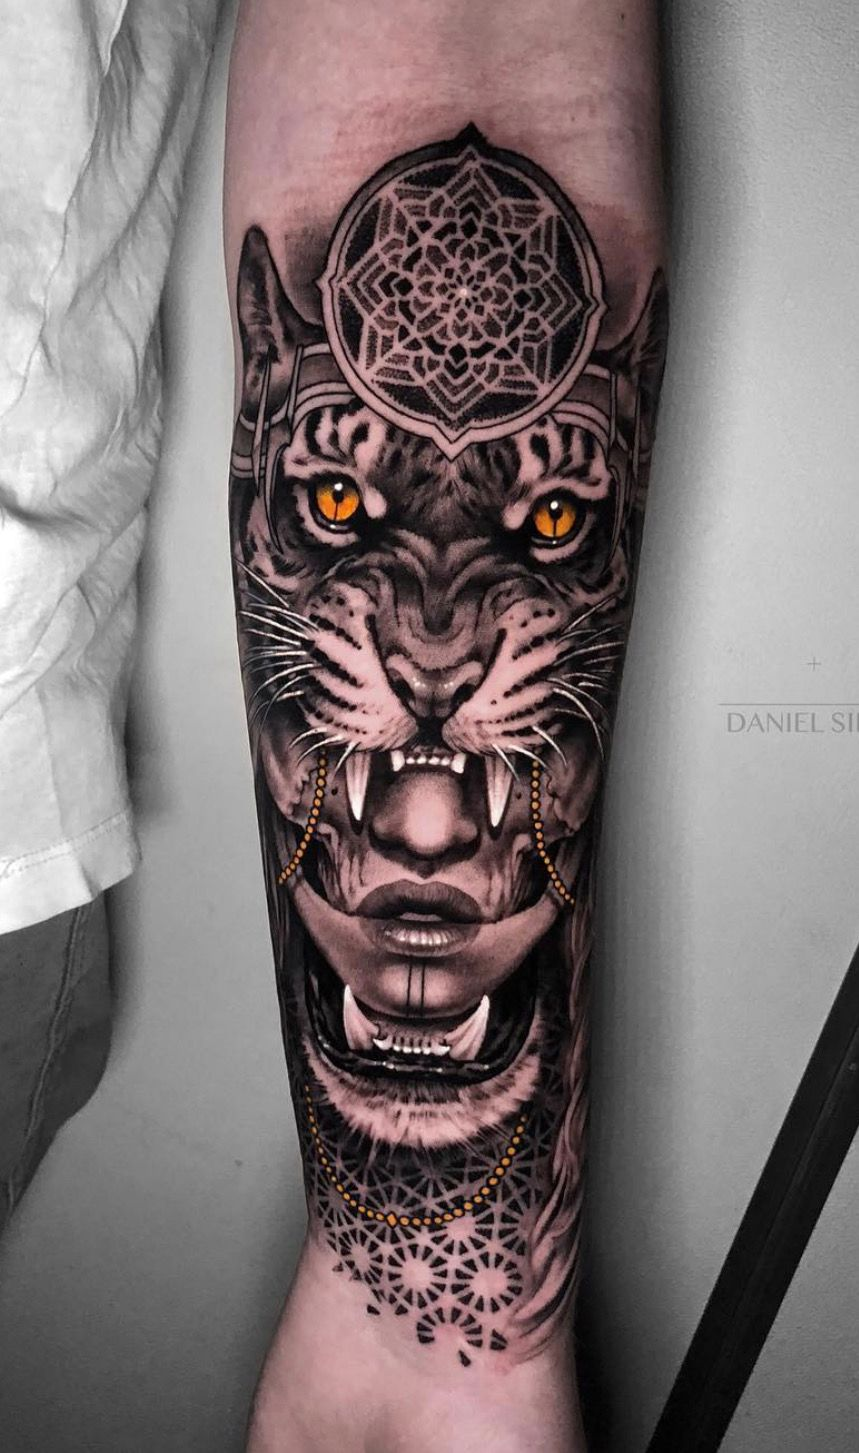 Tattoo Image By Javhaa Arm Tattoos For Guys Tattoos Leg Tattoos